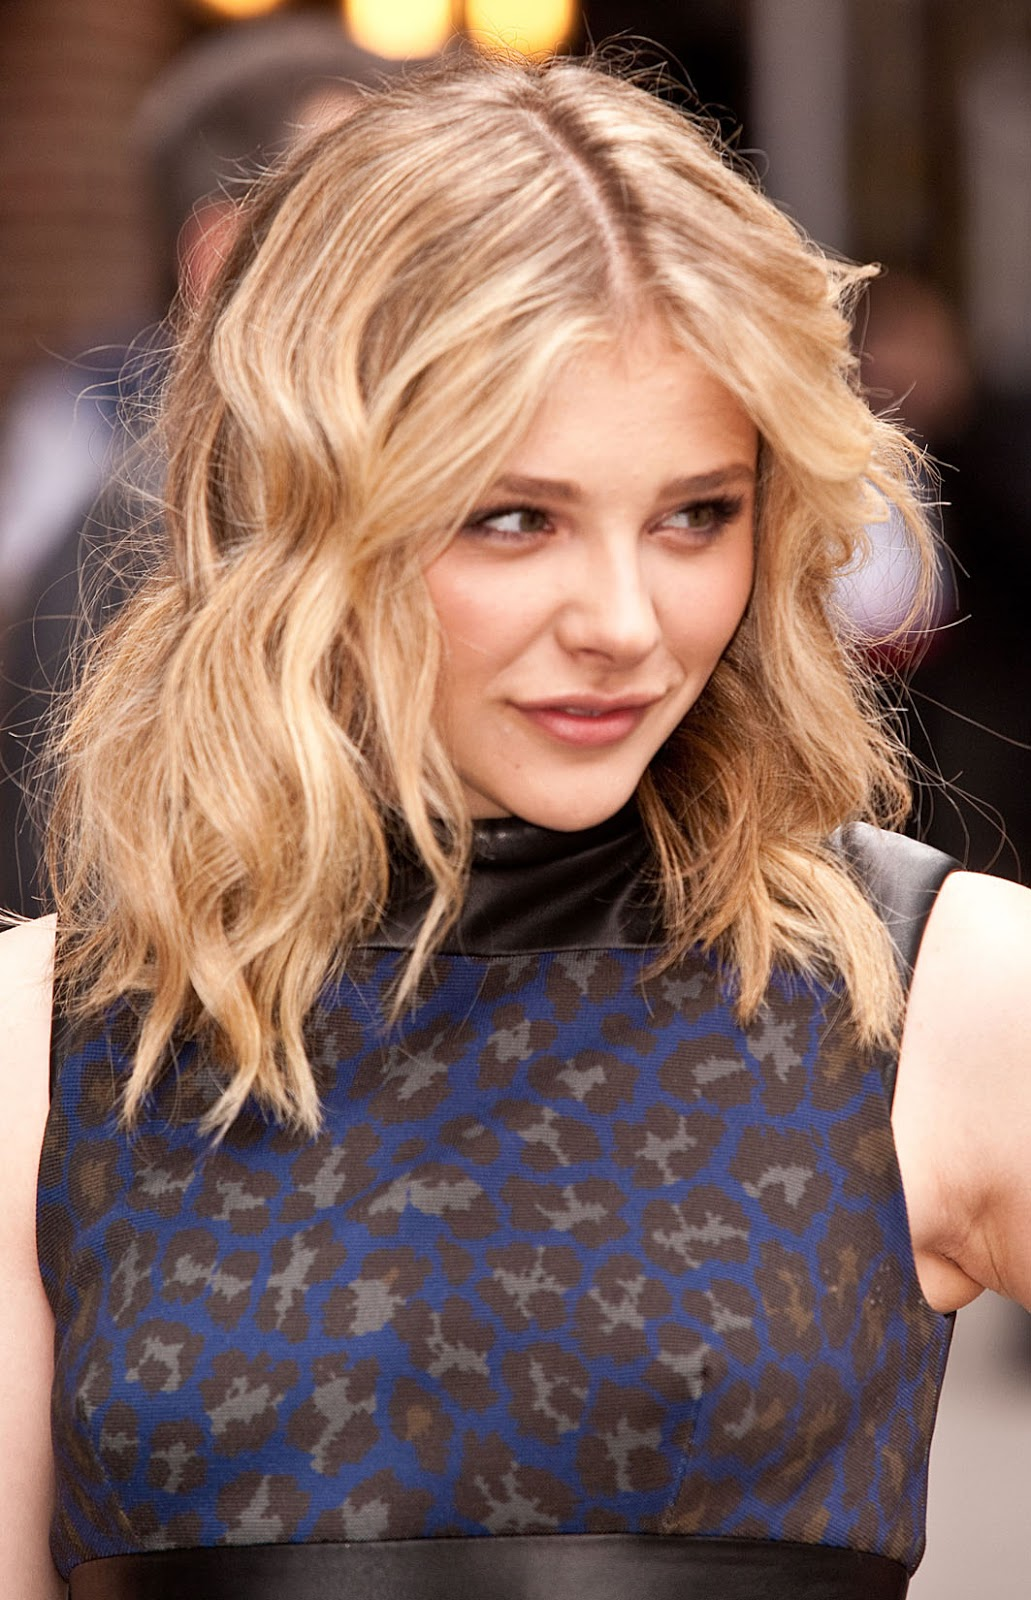 Celebrity Photos Chloe Grace Moretz HD Wallpapers